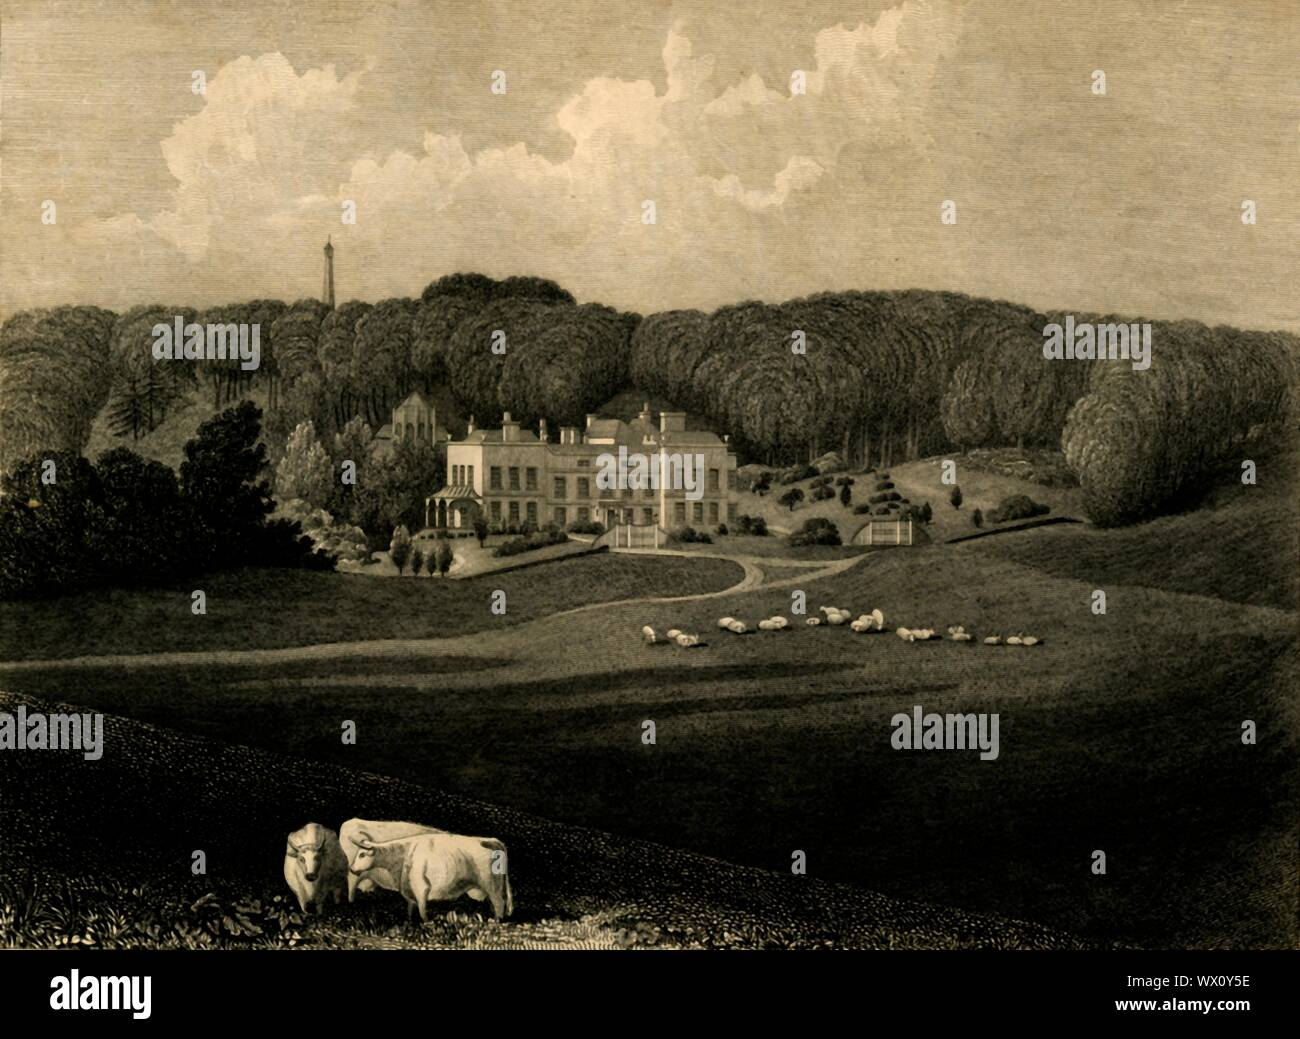 """'Muntham', 1835. Manor house in Horsham, home of FW Frankland until 1840. Antique engraving by CJ Smith after drawing by Thomas Henwood. From """"The History, Antiquities, and Topography of the County of Sussex, Volume the Second"""", by Thomas Walker Horsfield, F.S.A. [Baxter, Sussex Press, Lewes; Messrs. Nichols and Son, London, (1835)] Stock Photo"""